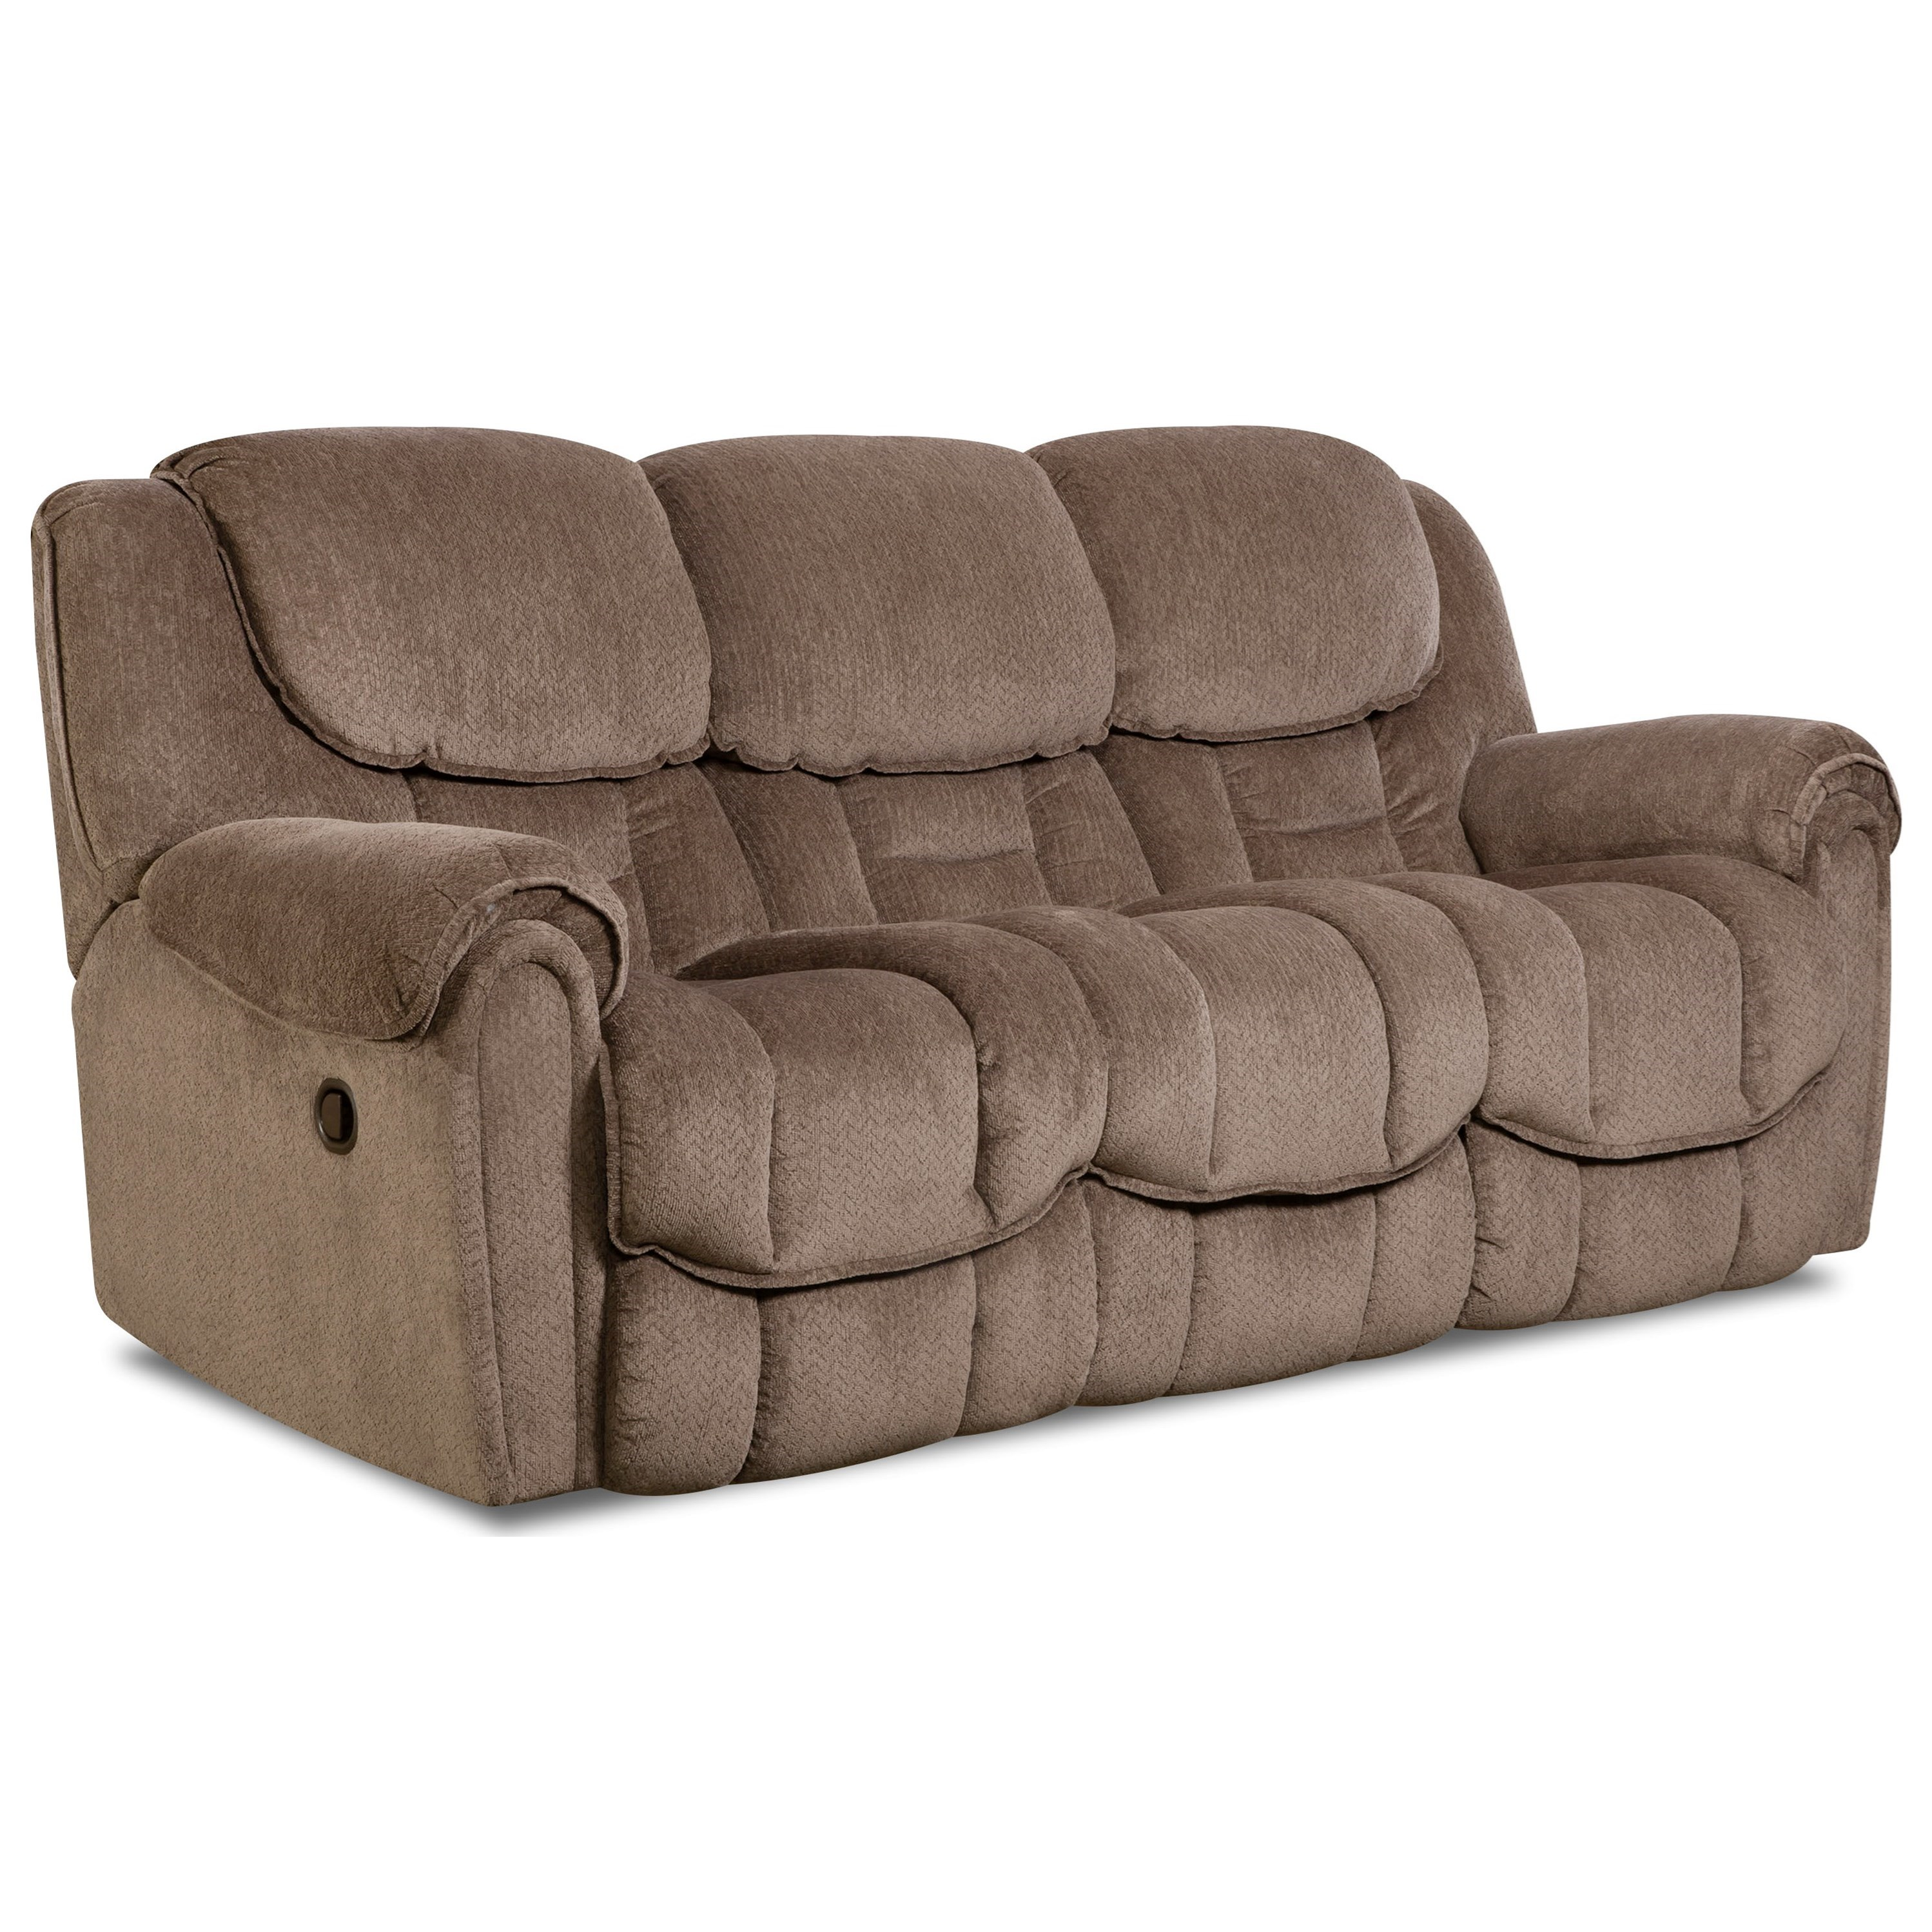 Comfort living baxter casual power reclining sofa with for Casual couch